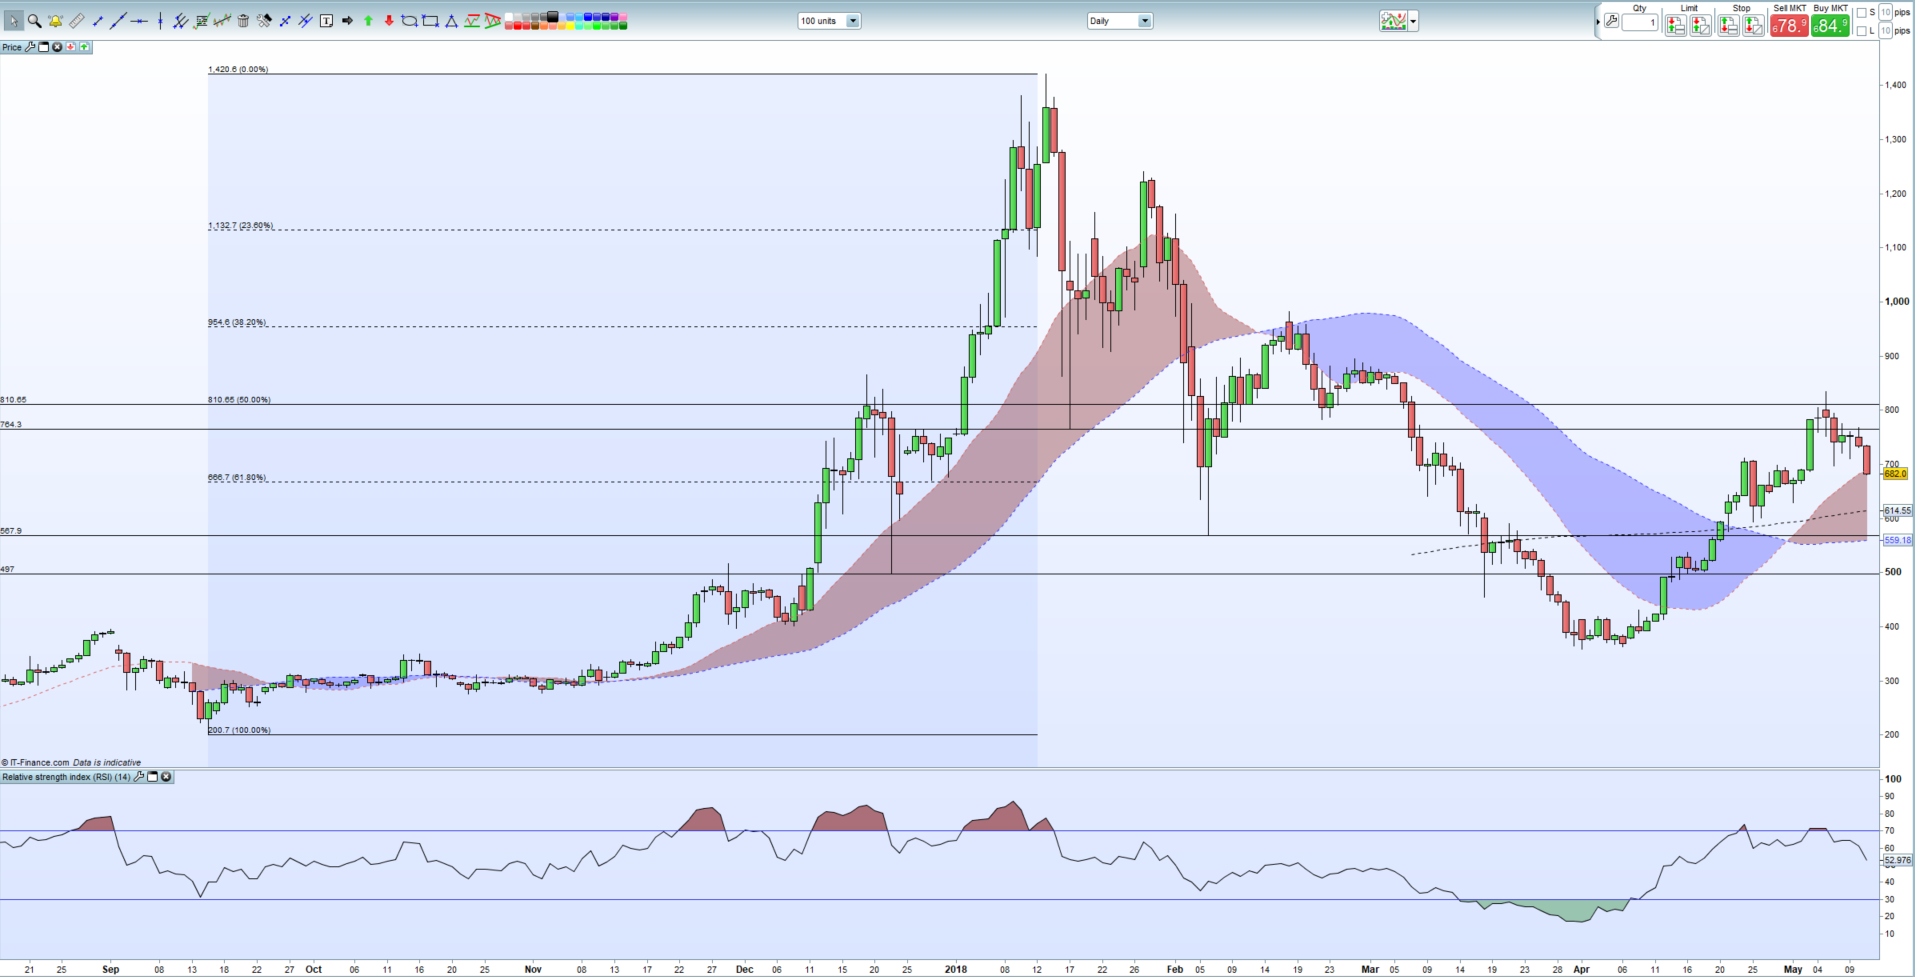 does technical analysis apply to cryptocurrency